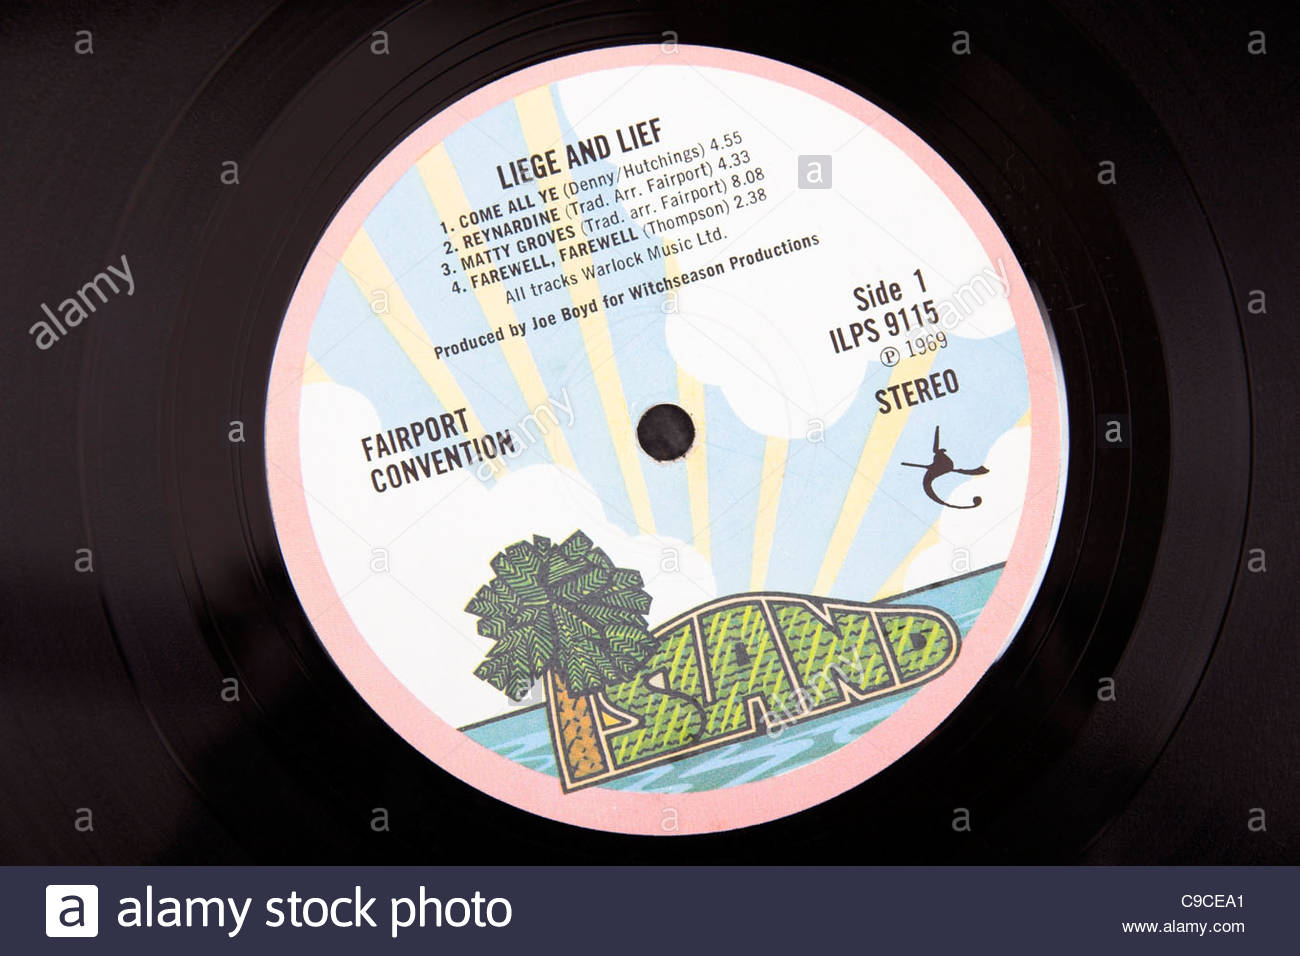 An early copy of Fairport Convention's 1969 Liege And Lief album, on the Island records label. - Stock Image